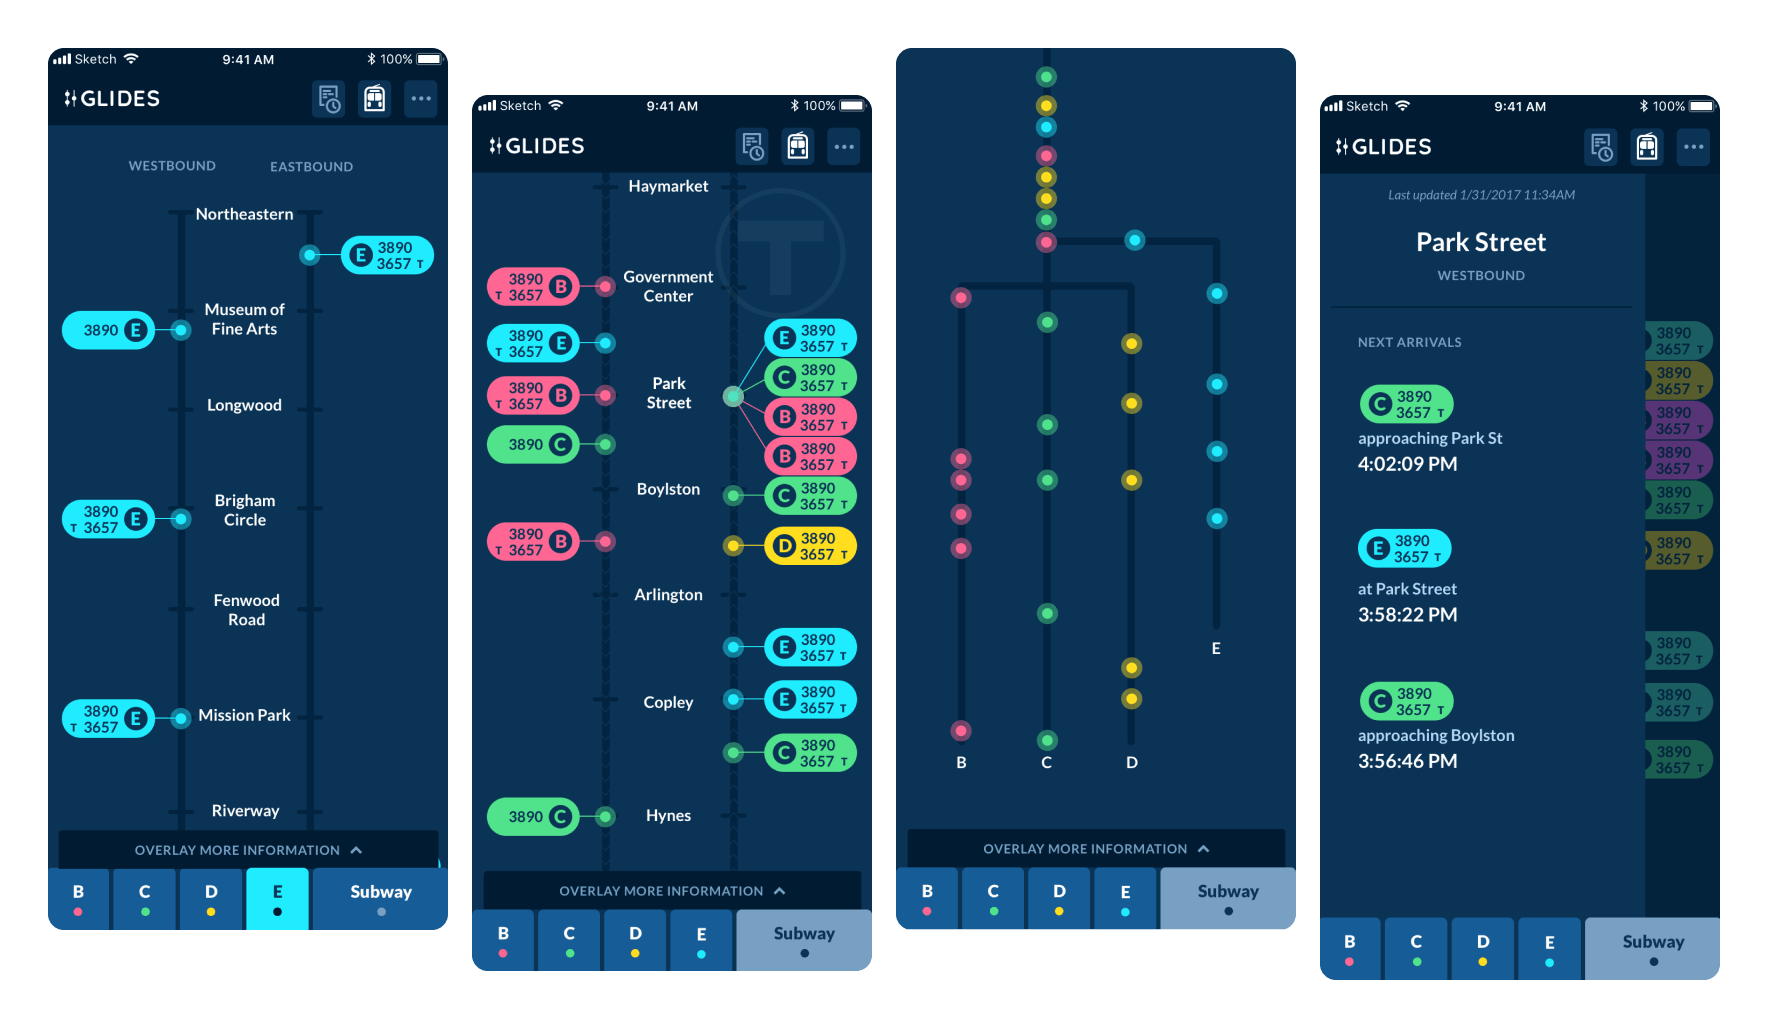 Four screenshots of the MBTA Glides app; A single train line view, a view of multiple trains, an overview of the separate green line trains, a view of a park street station